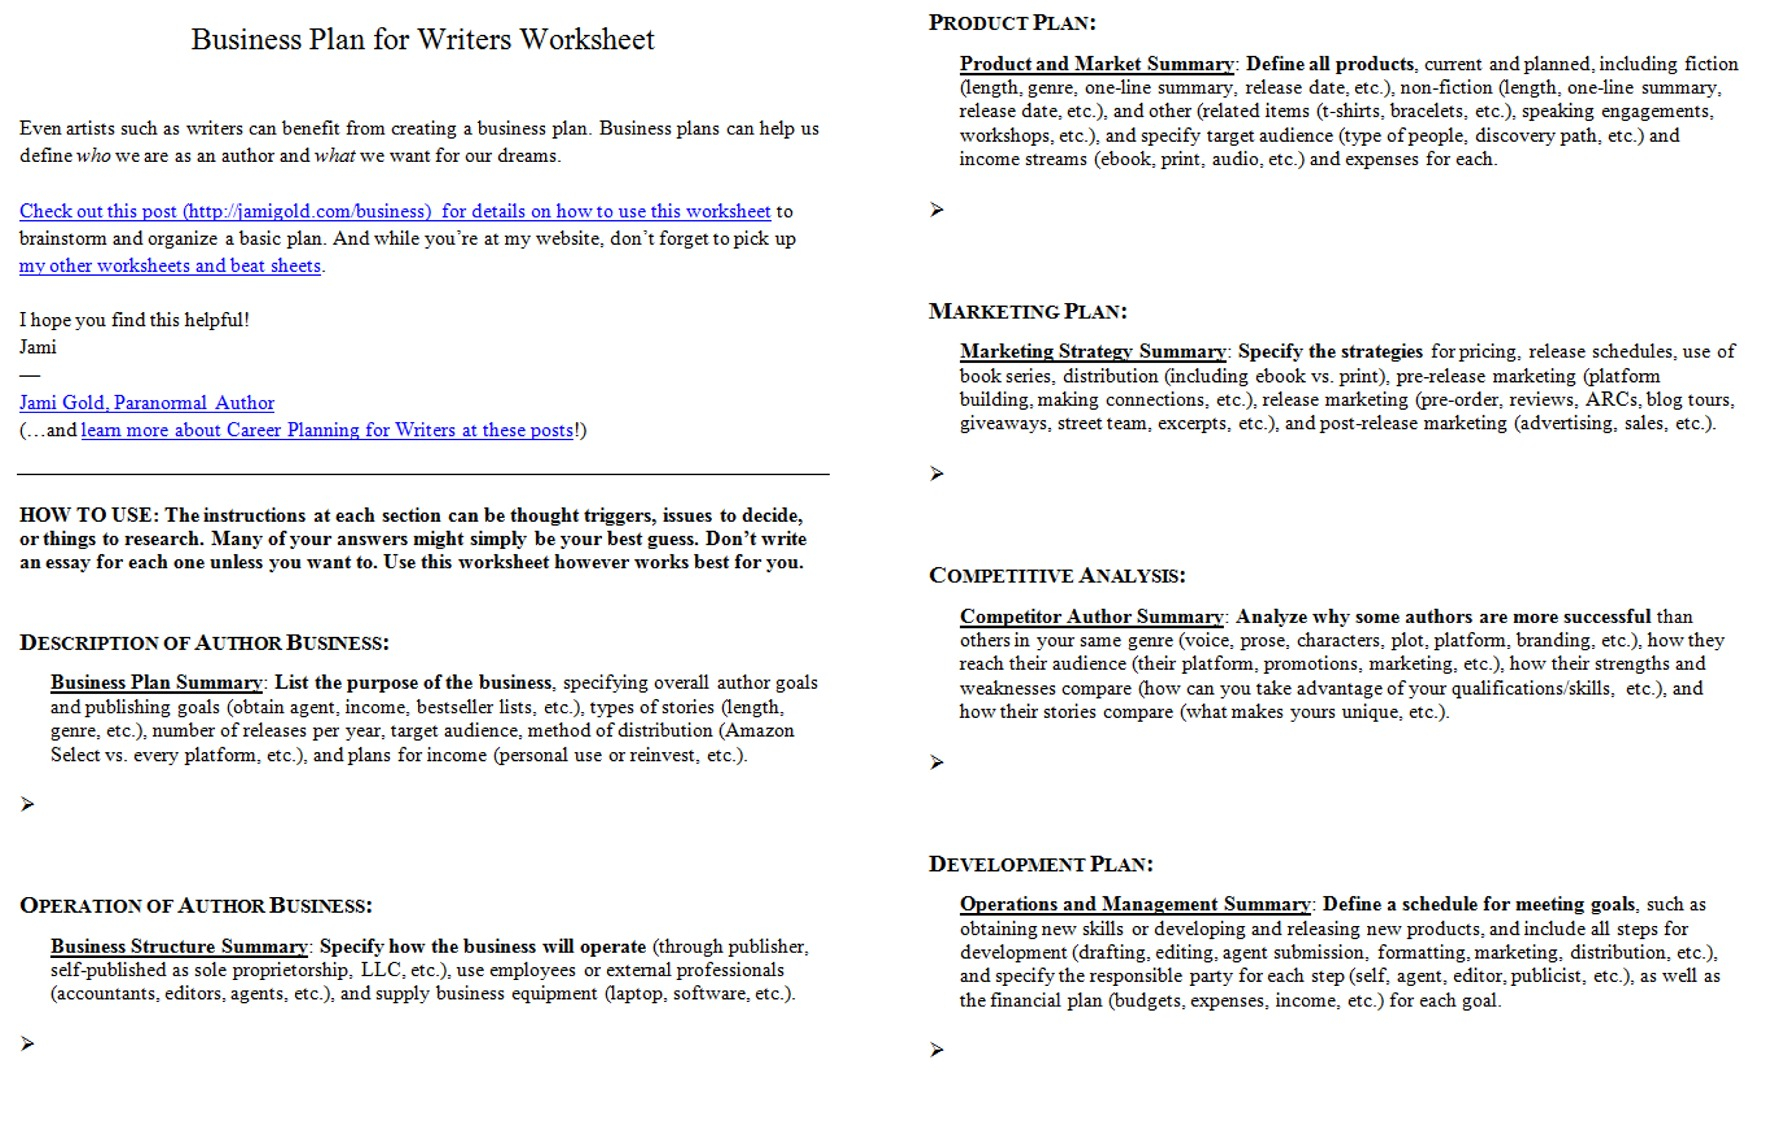 Proatmealus  Ravishing Worksheets For Writers  Jami Gold Paranormal Author With Great Screen Shot Of Both Pages Of The Business Plan For Writers Worksheet With Adorable Worksheets Free Printable Also Similies Worksheets In Addition How To Teach A Child To Tell Time Worksheets And Positive Self Esteem Worksheets As Well As Suffix Less Worksheets Additionally English Grammar Worksheets High School From Jamigoldcom With Proatmealus  Great Worksheets For Writers  Jami Gold Paranormal Author With Adorable Screen Shot Of Both Pages Of The Business Plan For Writers Worksheet And Ravishing Worksheets Free Printable Also Similies Worksheets In Addition How To Teach A Child To Tell Time Worksheets From Jamigoldcom